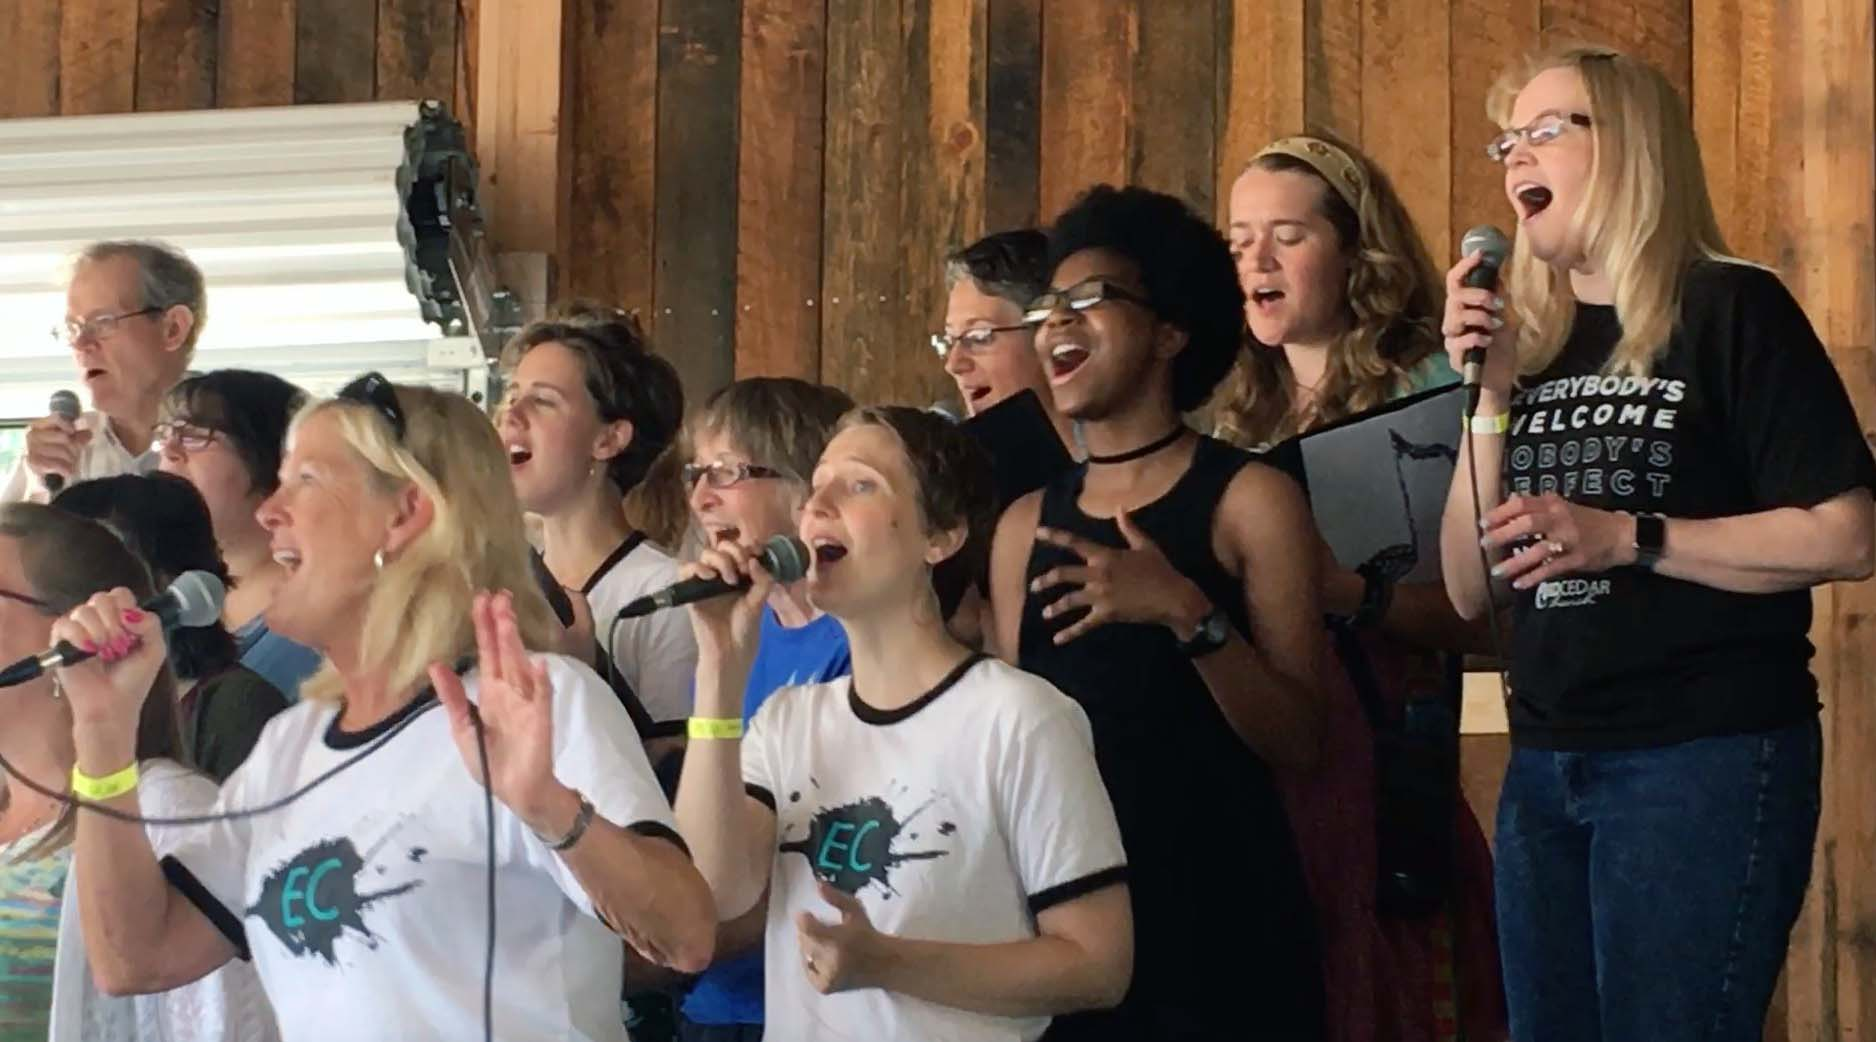 Cameron Invite! joins the CollECtive Choir with the Towering Pines Church in Cameron Wi for missional, worship music and praise.</span></p> <p><span style=